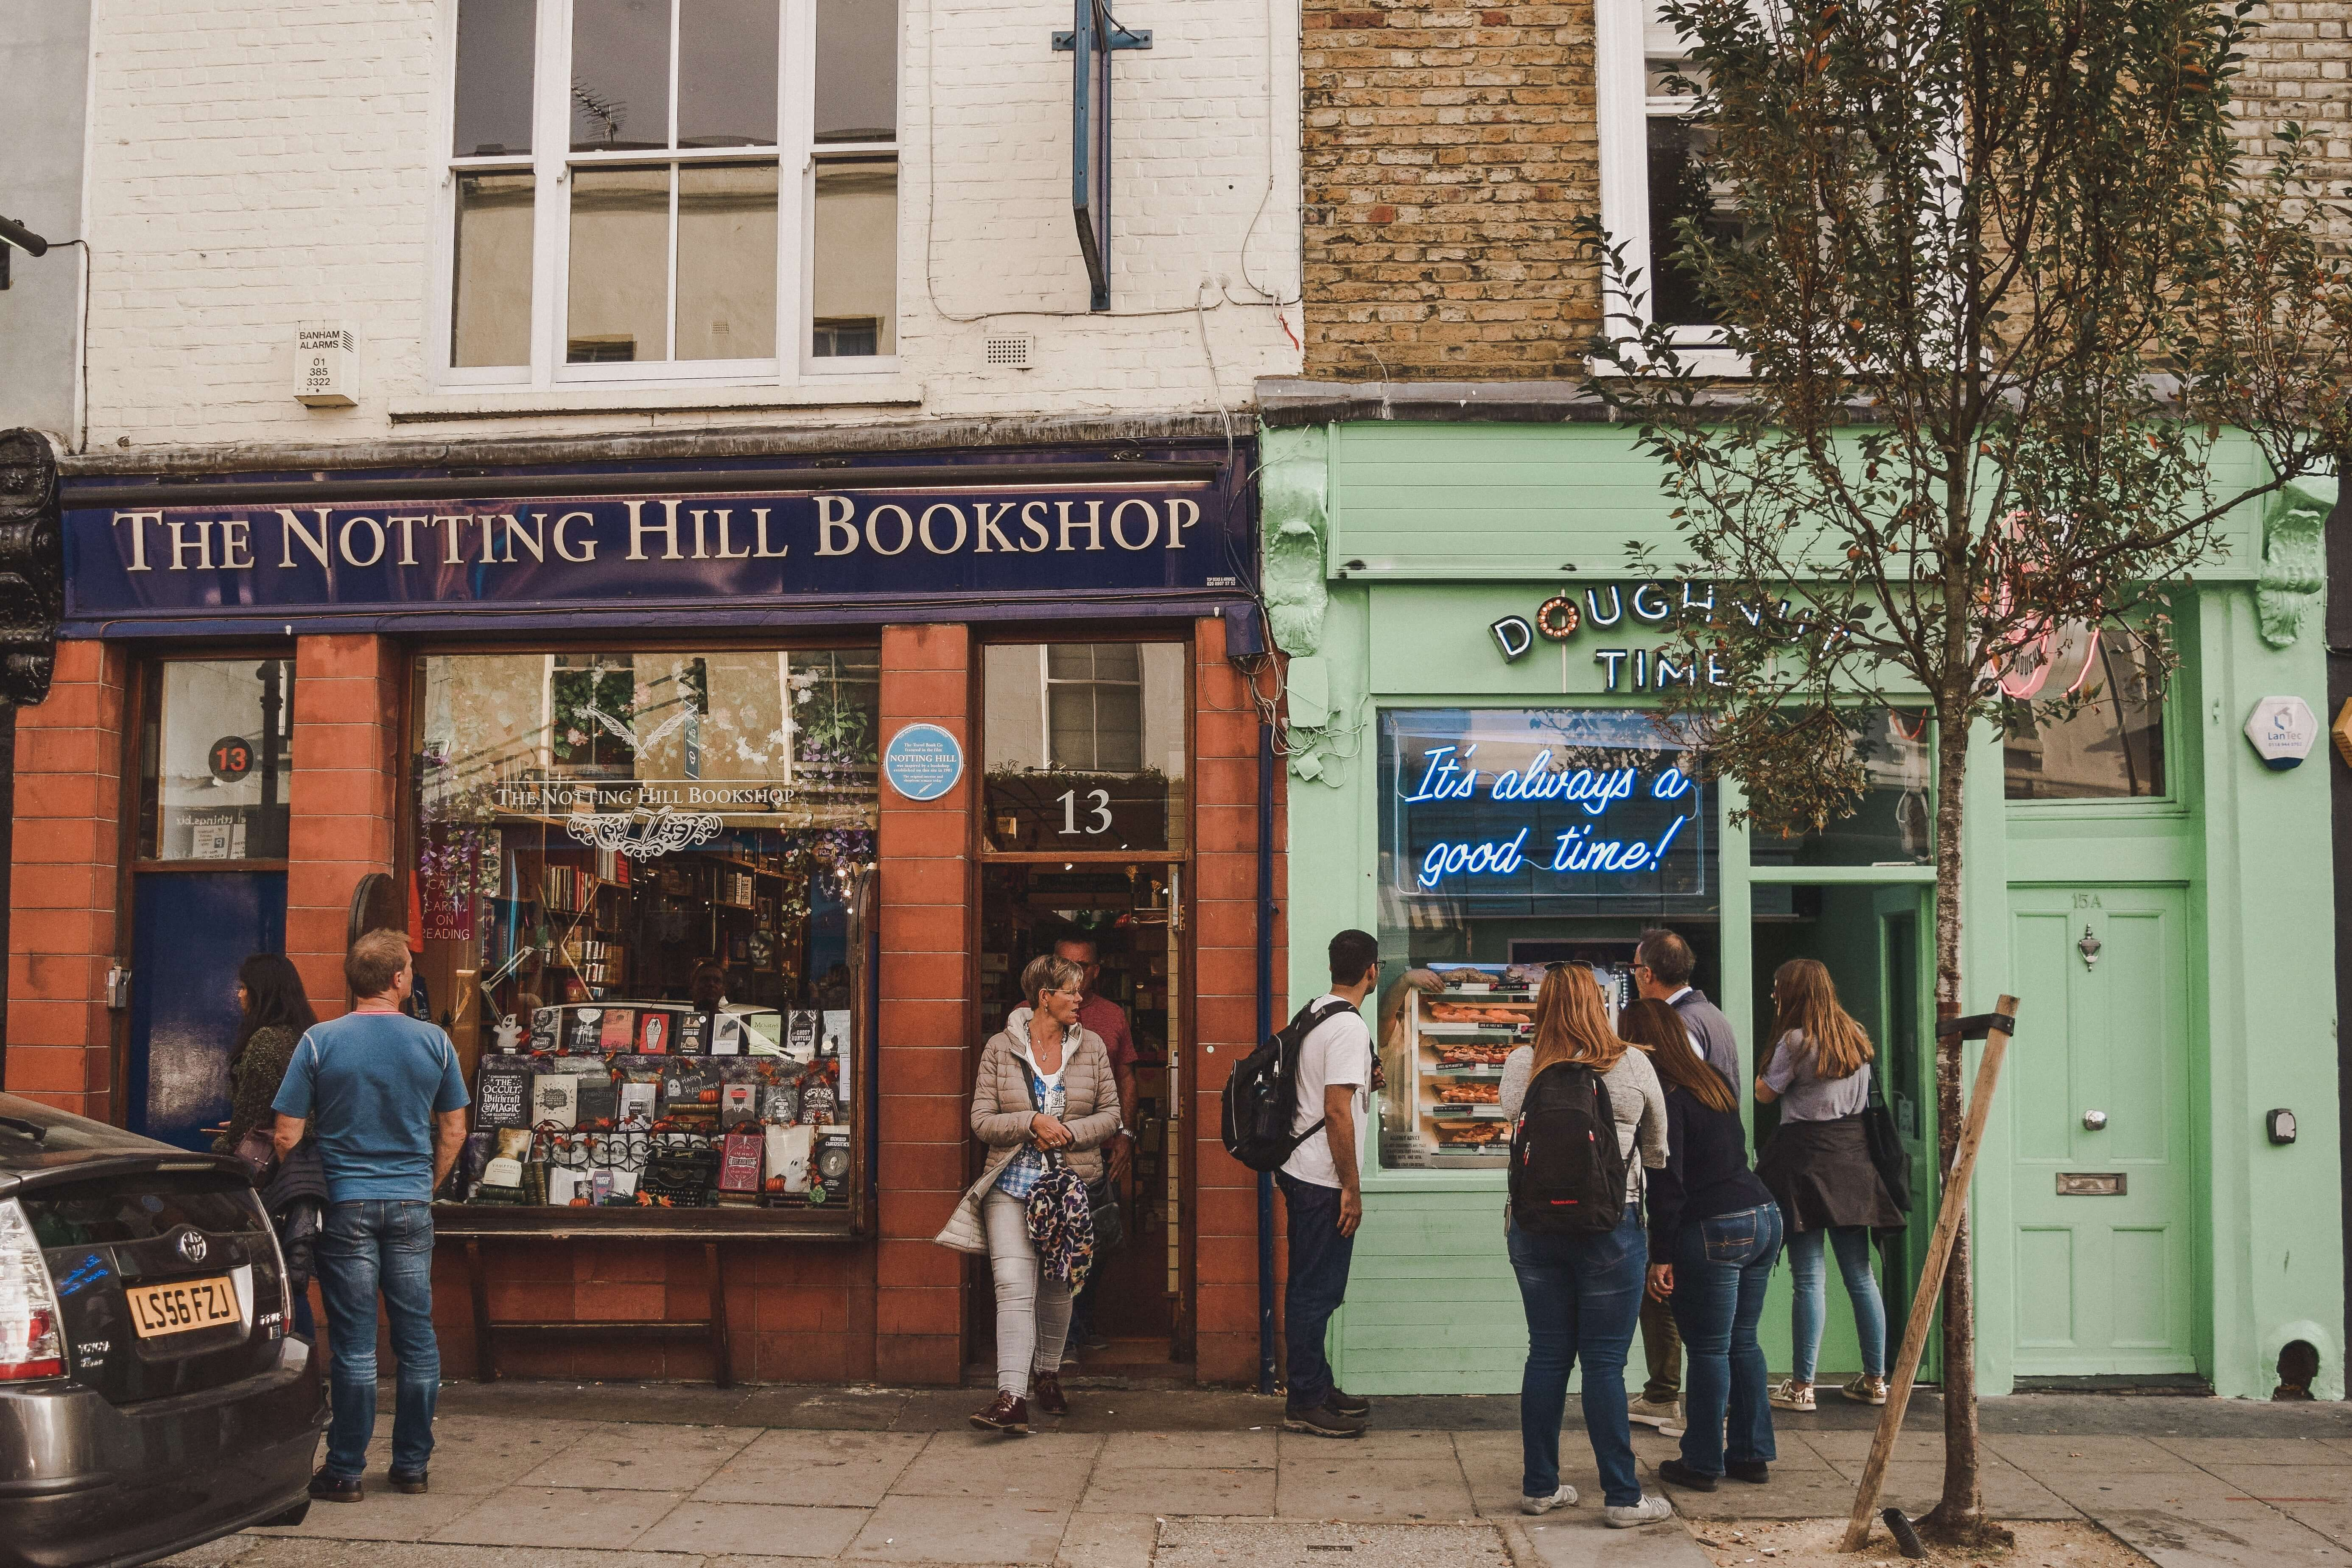 A bookshop and café in London with customers